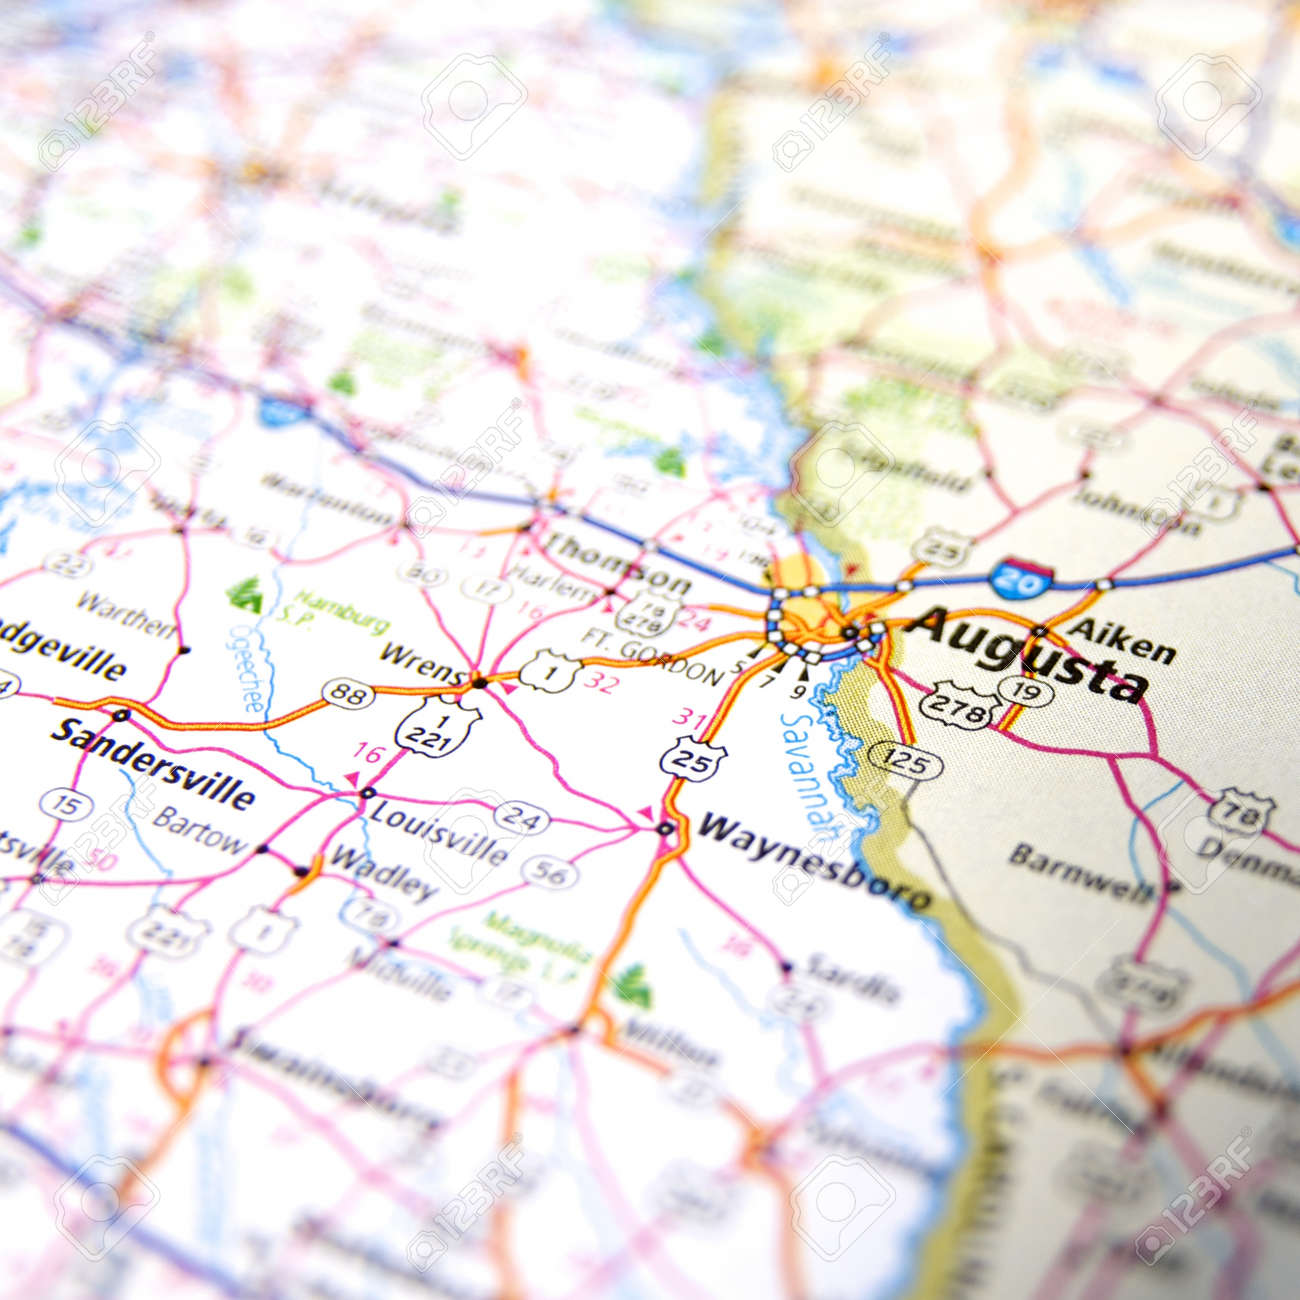 Map Of Augusta Georgia And Surrounding Area.Close Up Map Of Augusta Georgia Stock Photo Picture And Royalty